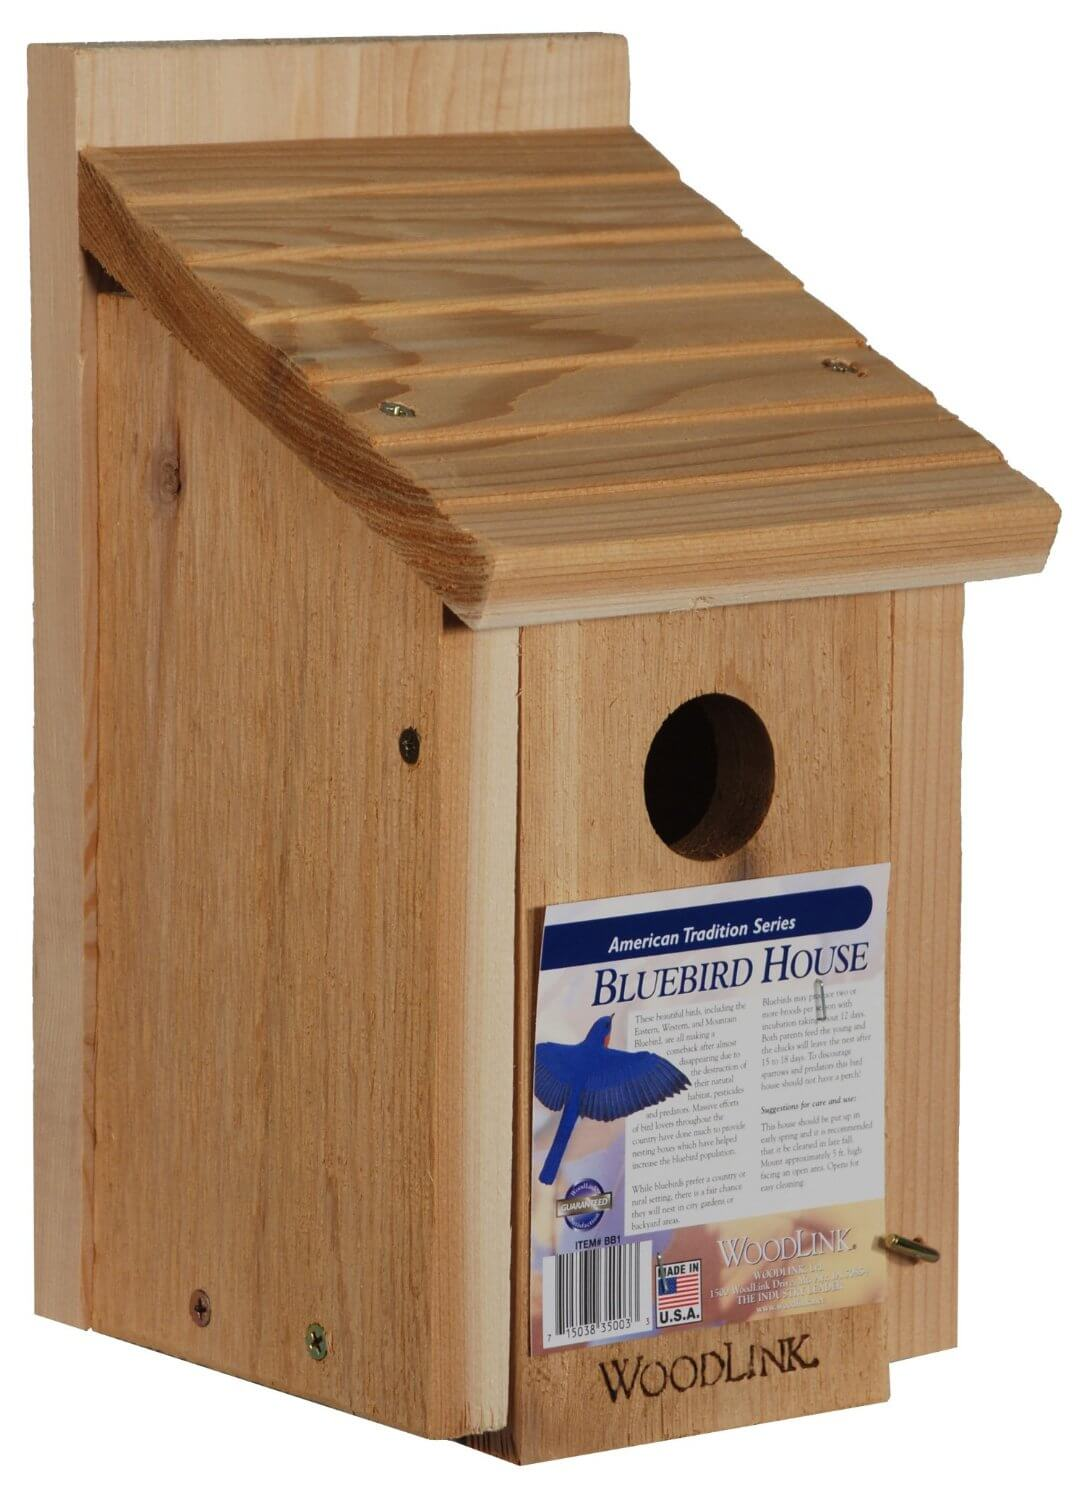 Simple Bird House Built With Kiln Dried Red Cedar Wood With Sloped Roof.